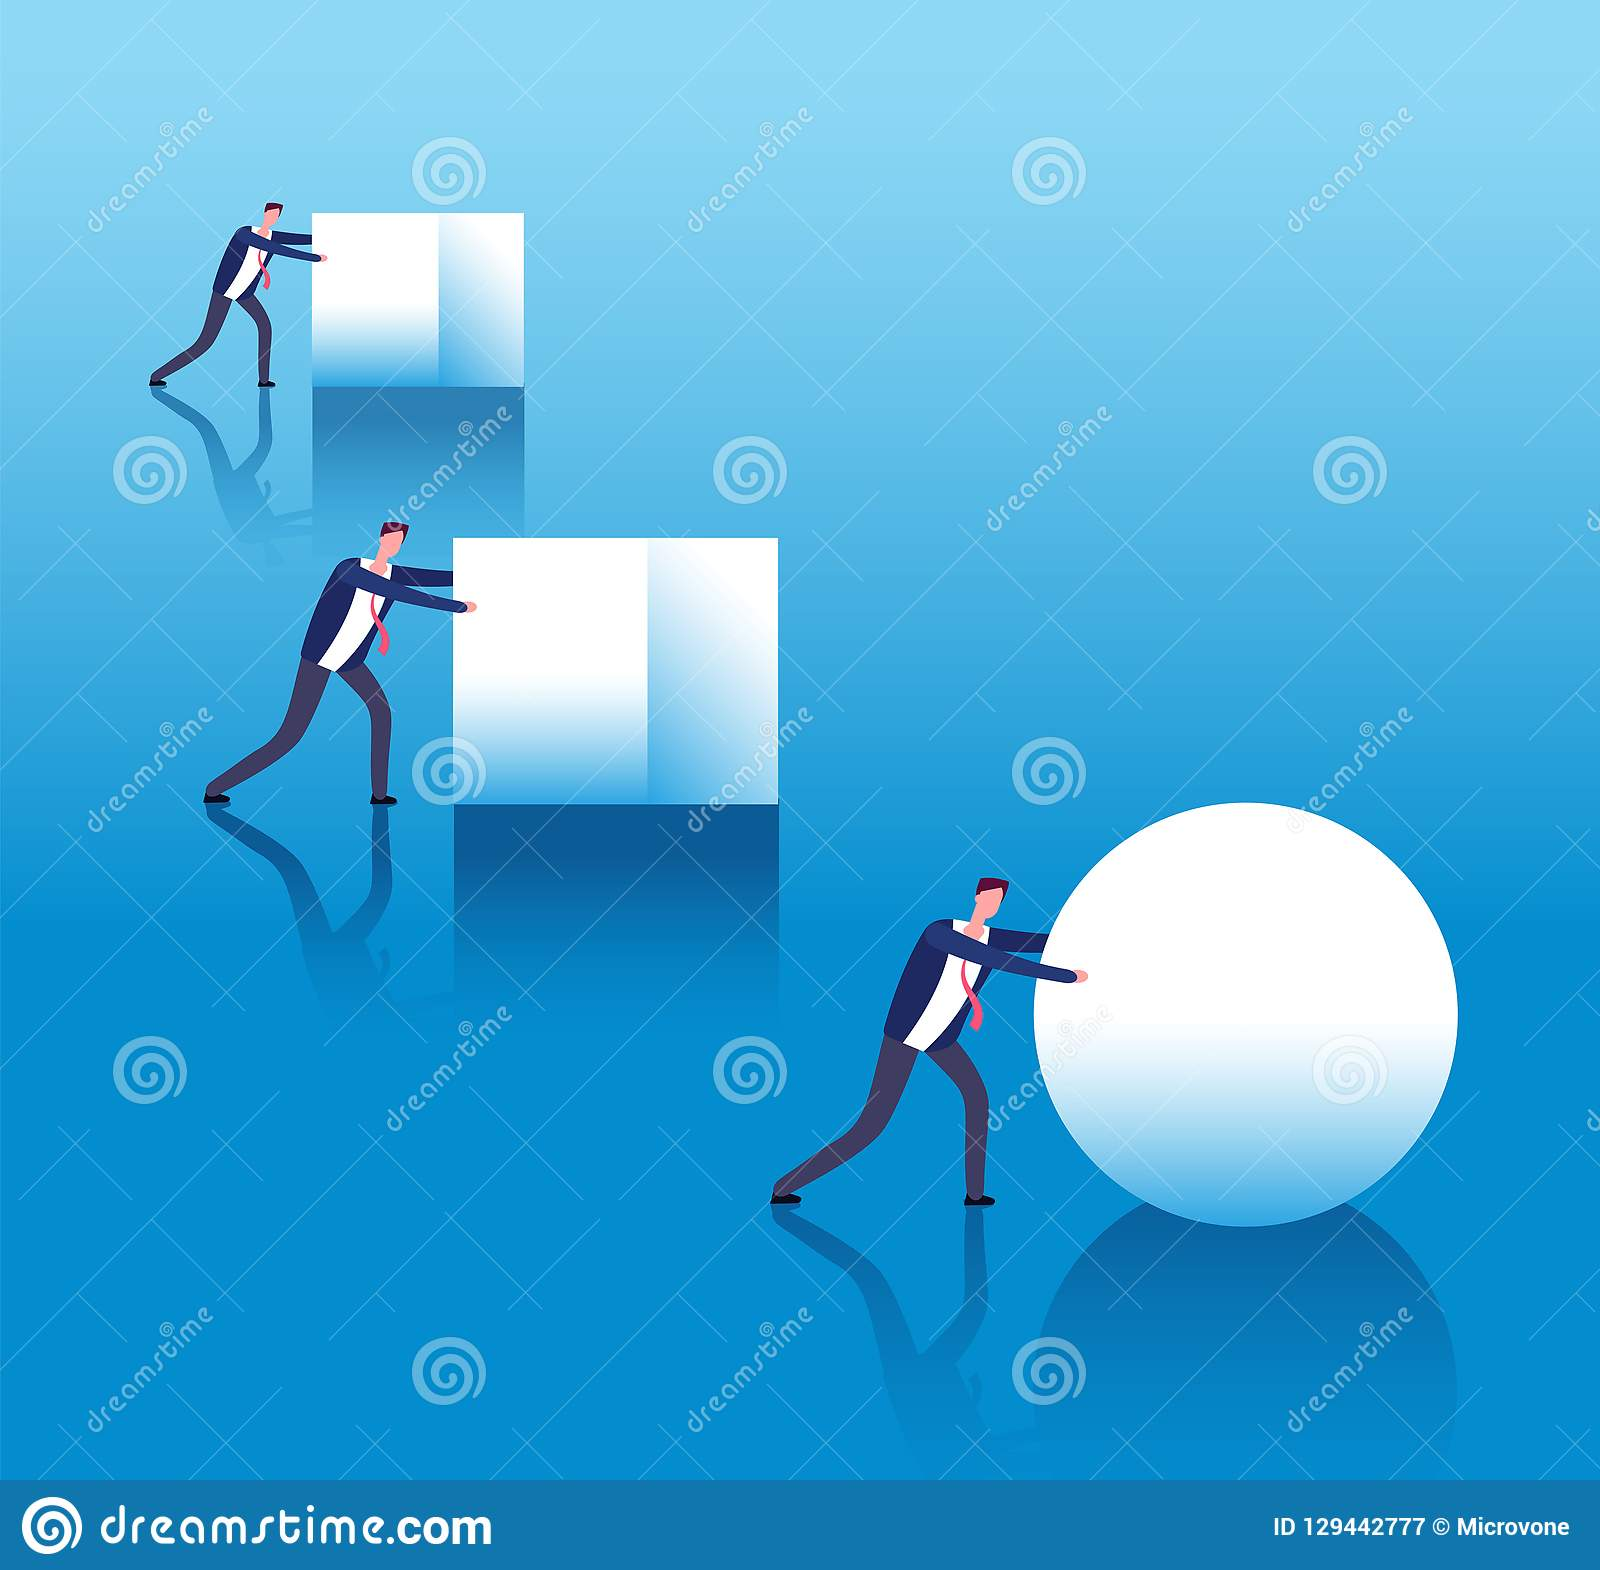 Business efficient concept. Businessmen push boxes and smart leader rolls ball. Business innovation and strategy